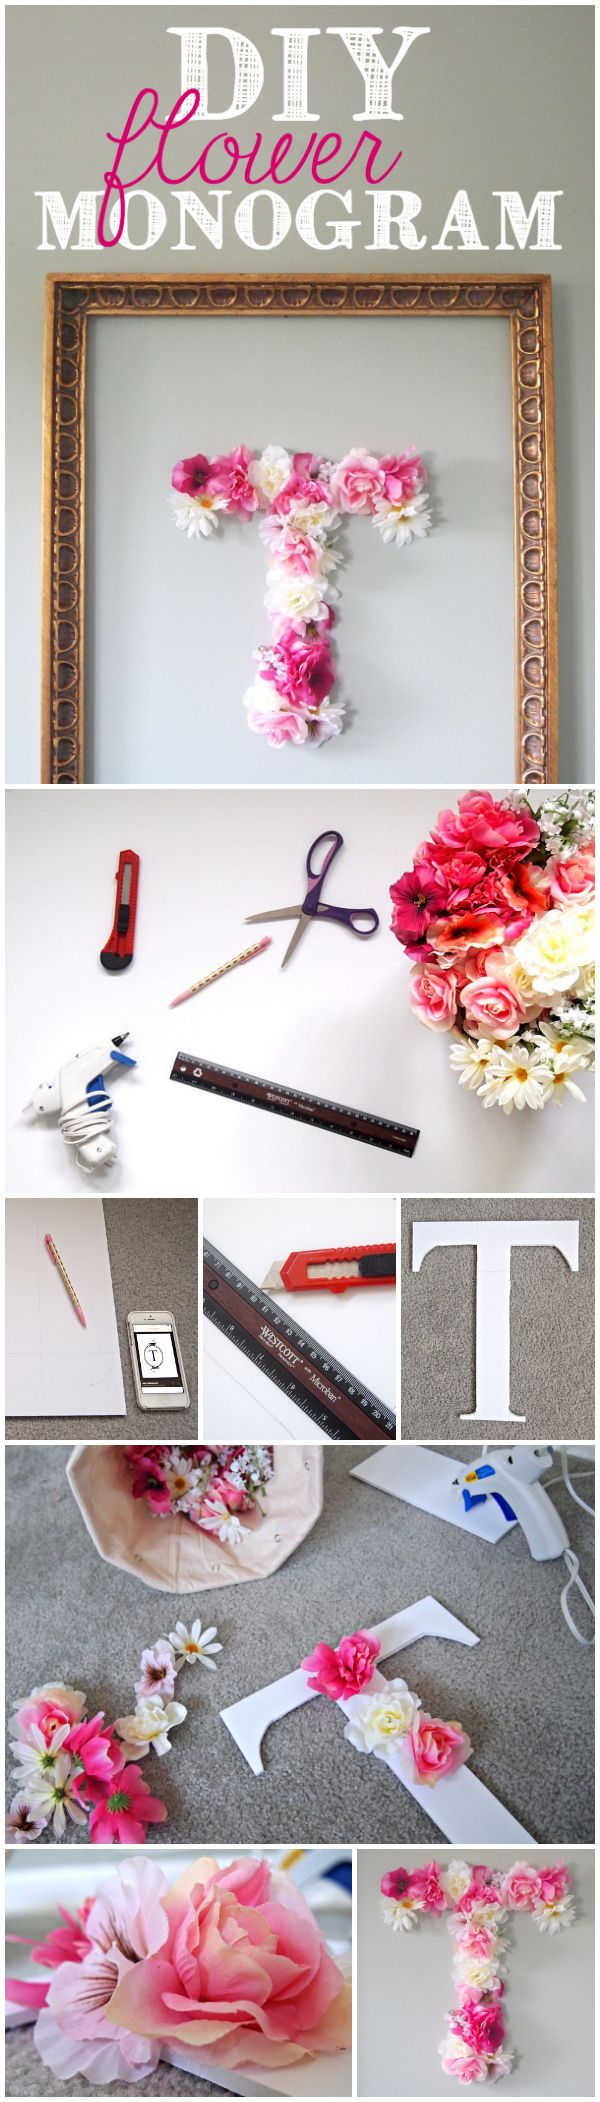 2288 best diy wall art images on pinterest diy wall art diy faux flower monogram amipublicfo Images